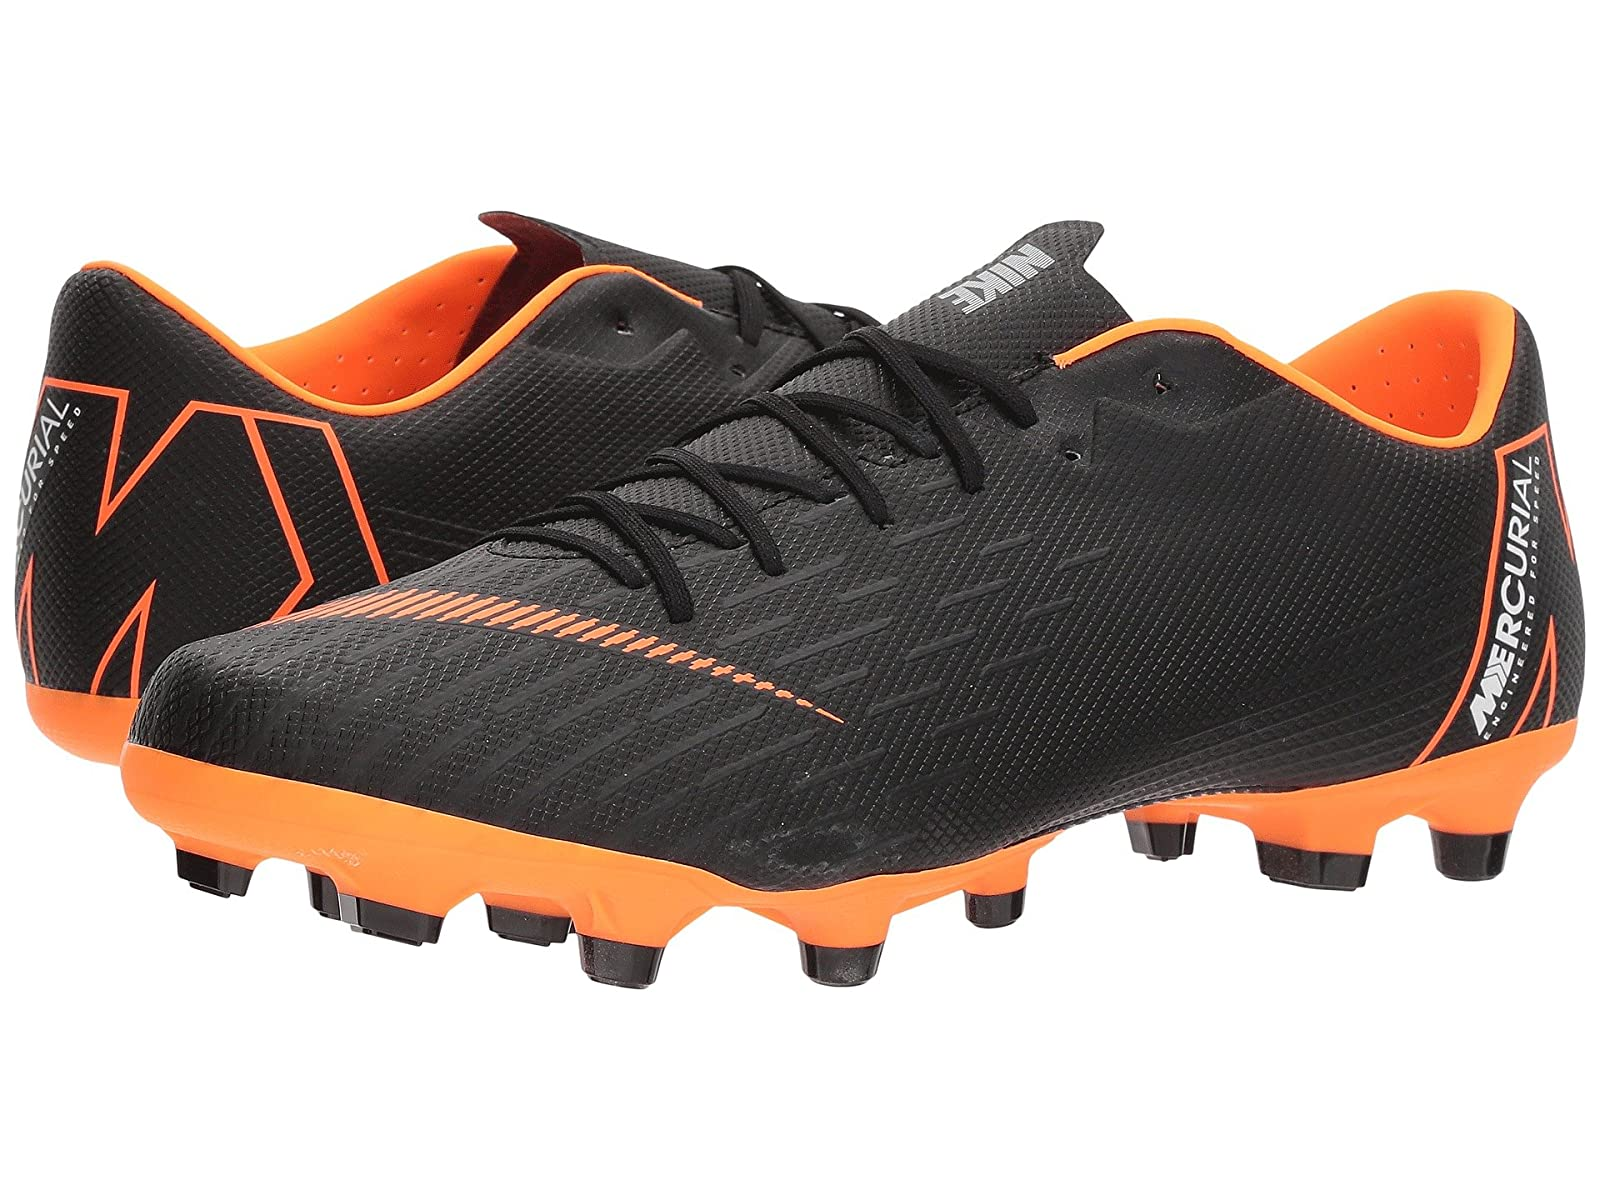 Nike Vapor 12 Academy MGCheap and distinctive eye-catching shoes